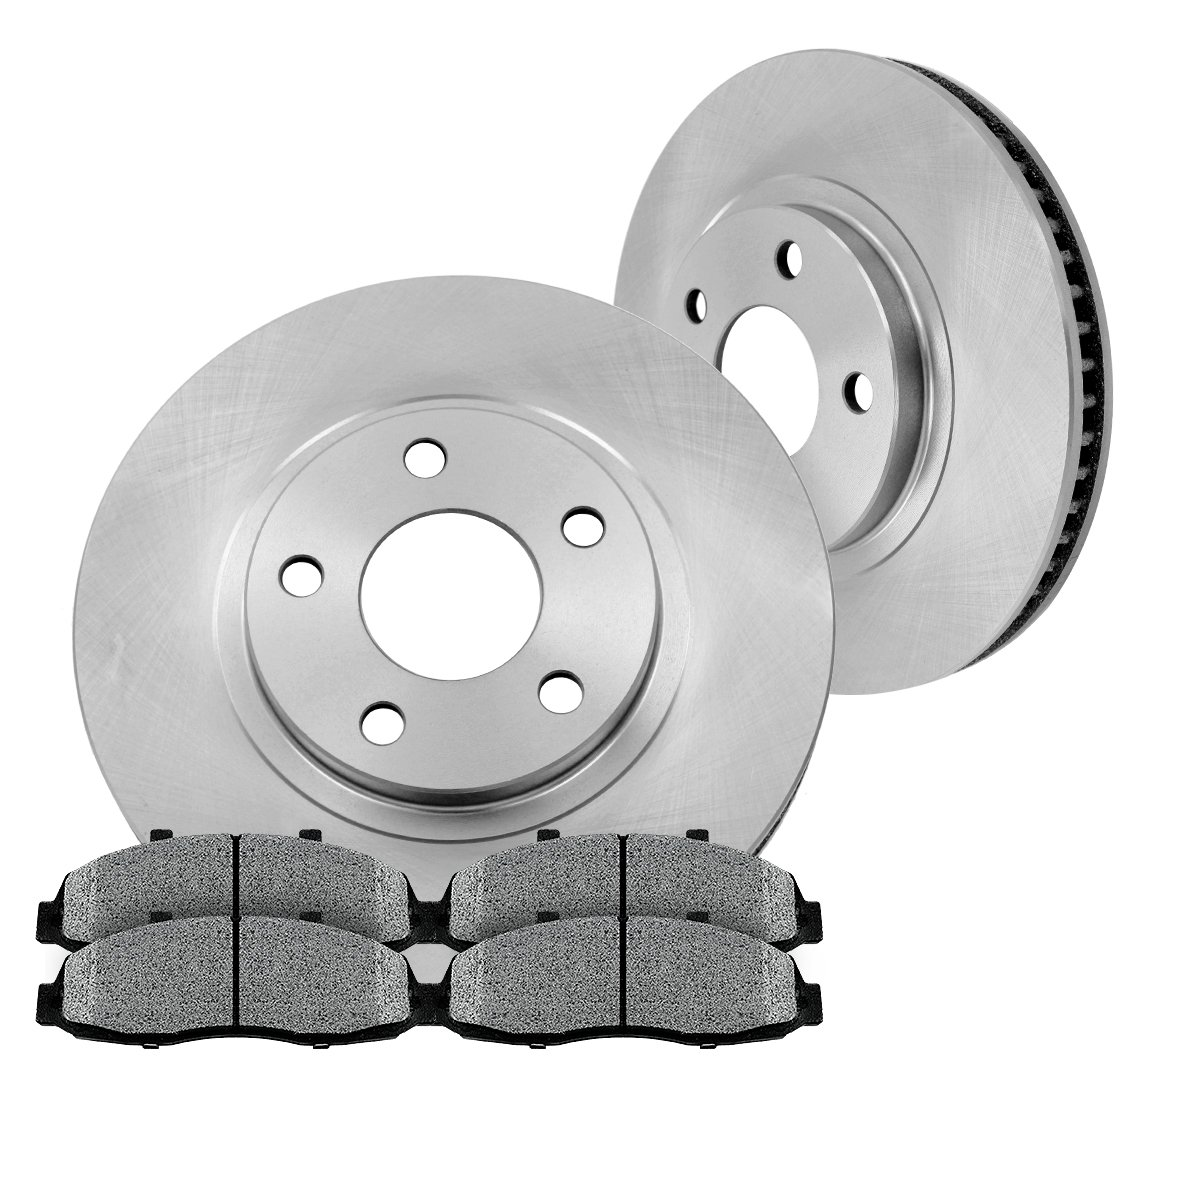 CK005058 FRONT 294 mm Premium Grade OE [2] Brake Rotors + [4] Metallic Brake Pads Kit